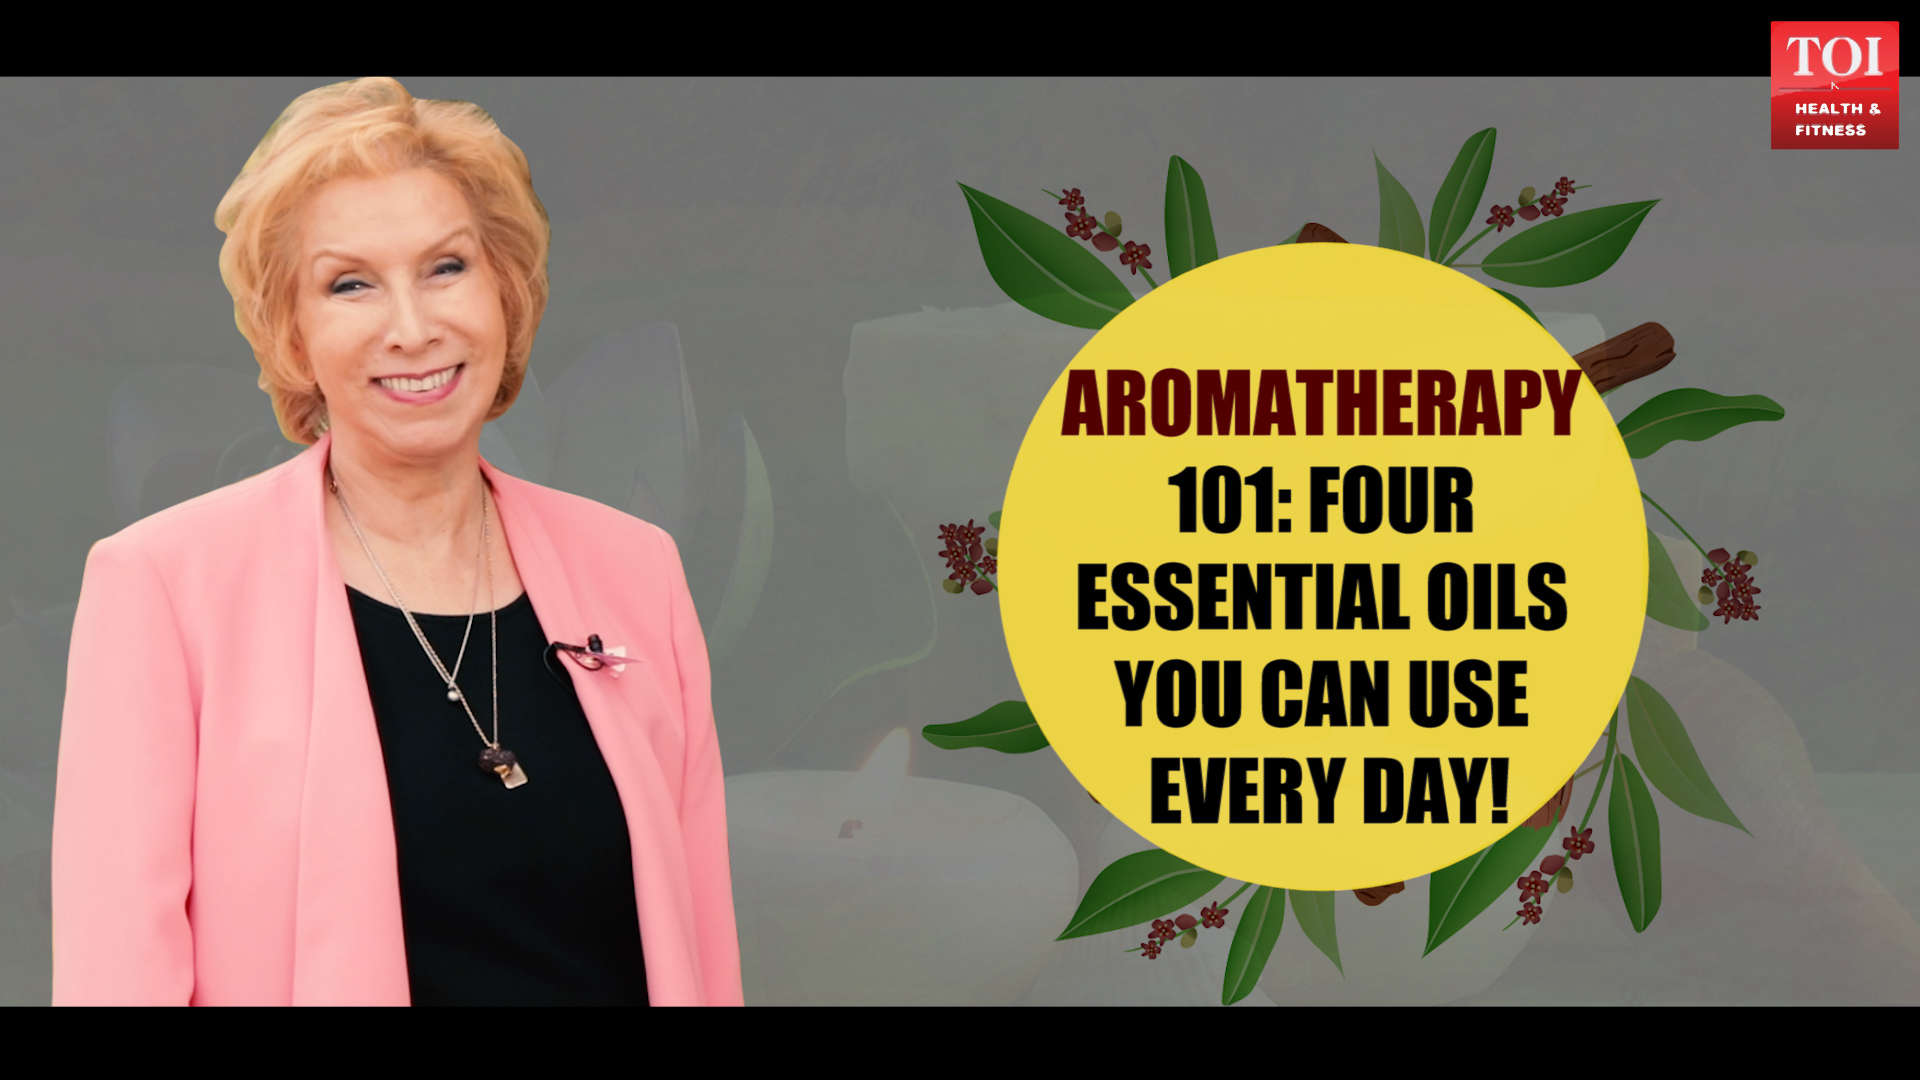 Aromatherapy 101: Four essential oils you can use everyday